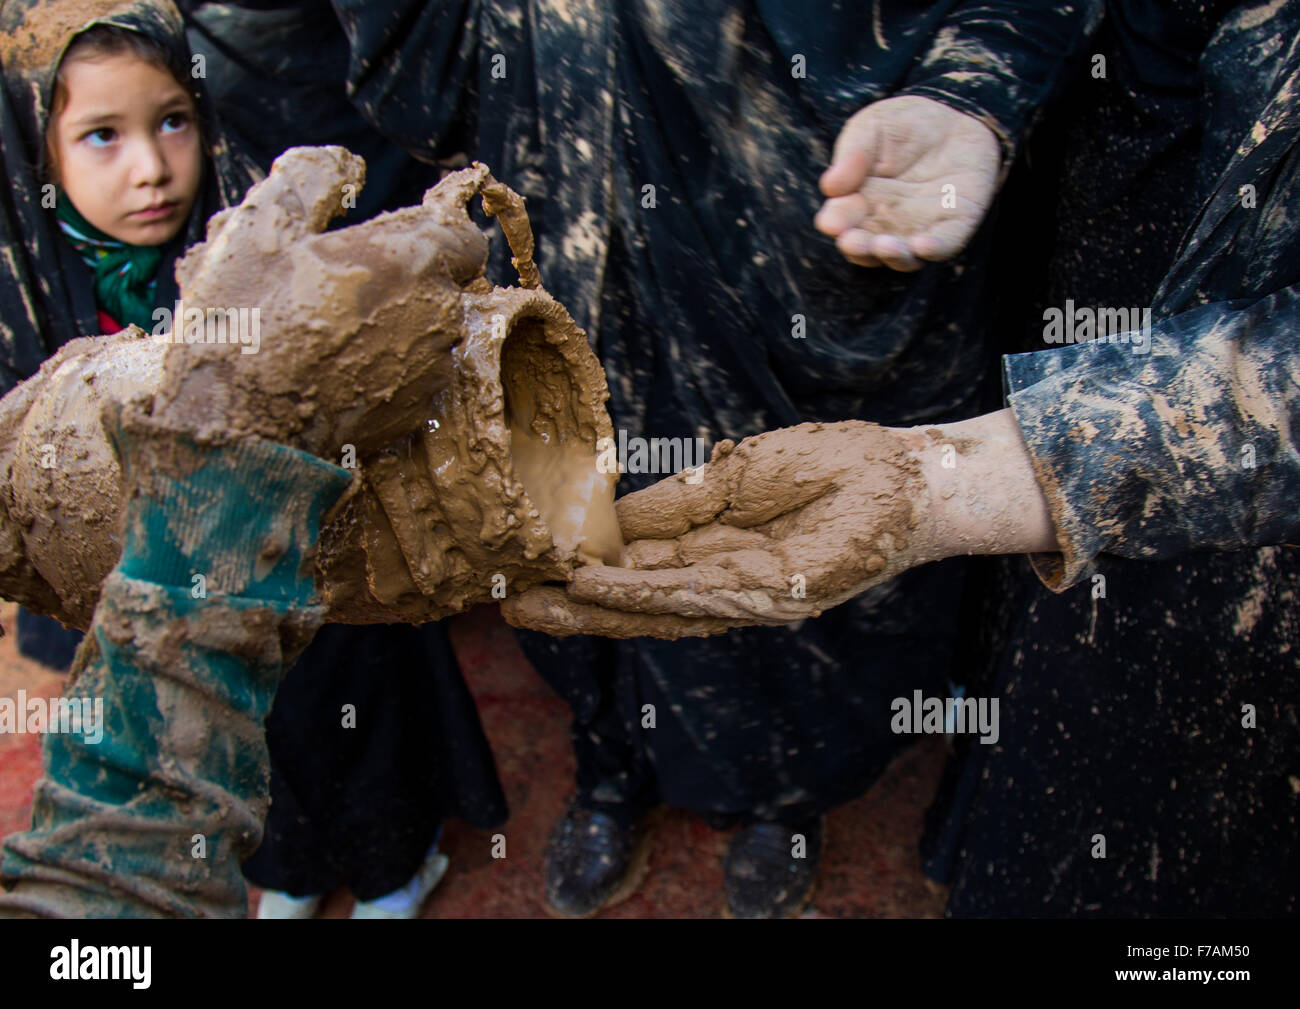 Iranian Shiite Muslim Women Covering Themselves In Mud During